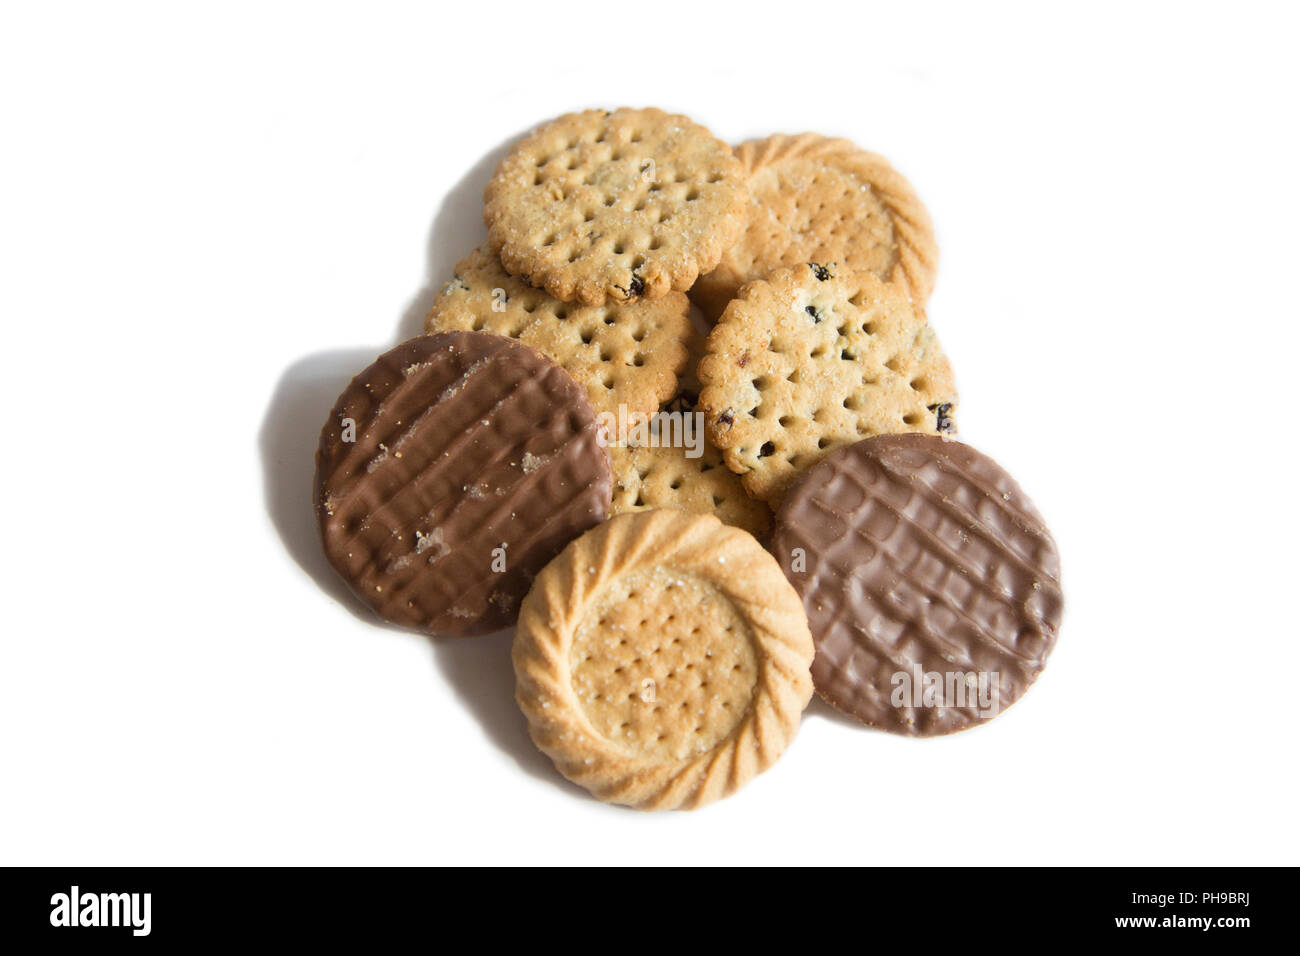 A pile of mixed biscuits ready to be eaten sitting on a clean white background - Stock Image